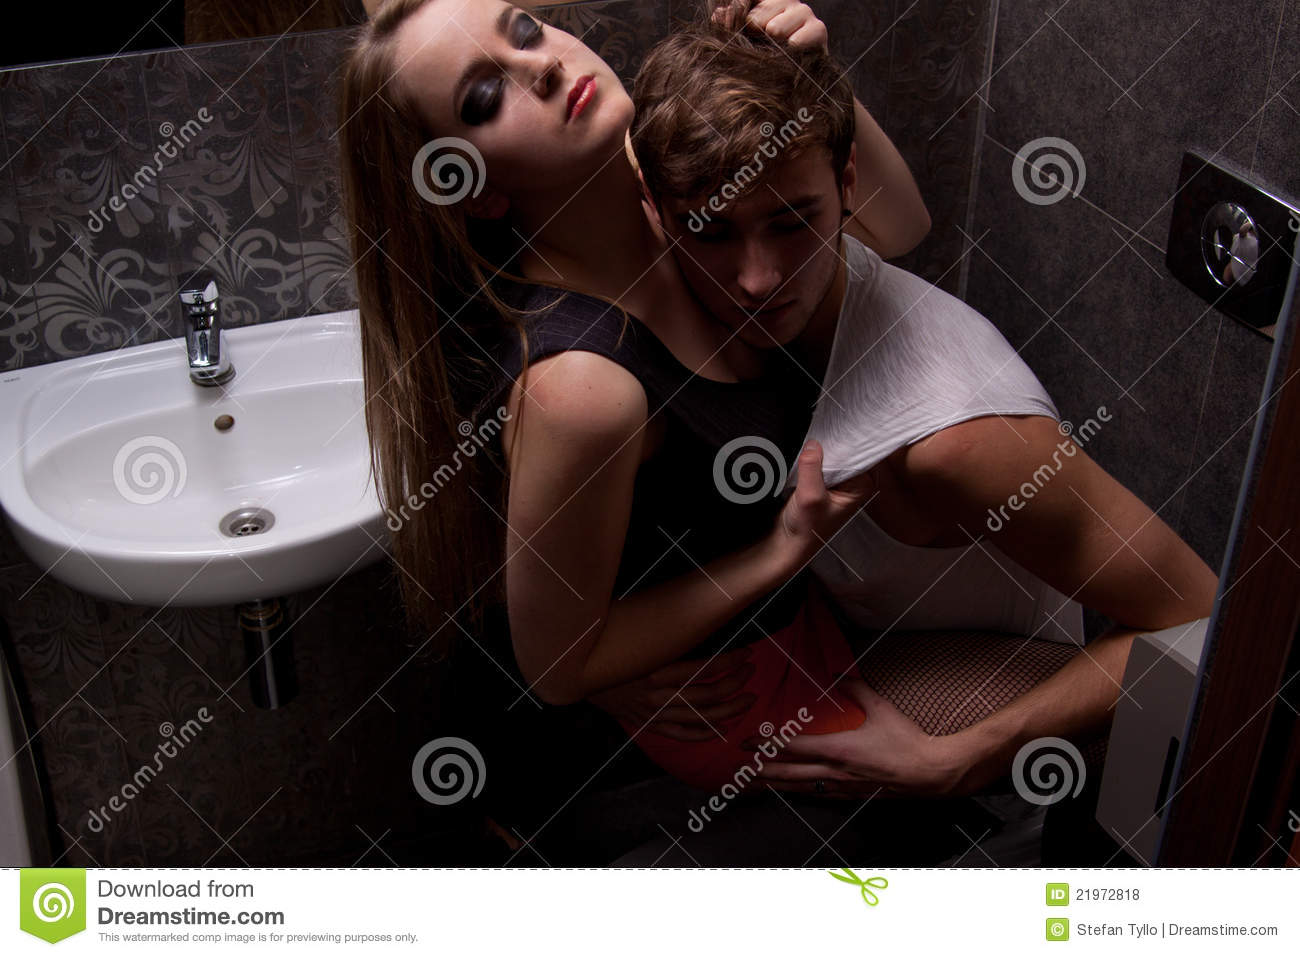 Couple In Toilet, Fooling Around Stock Photo - Image of